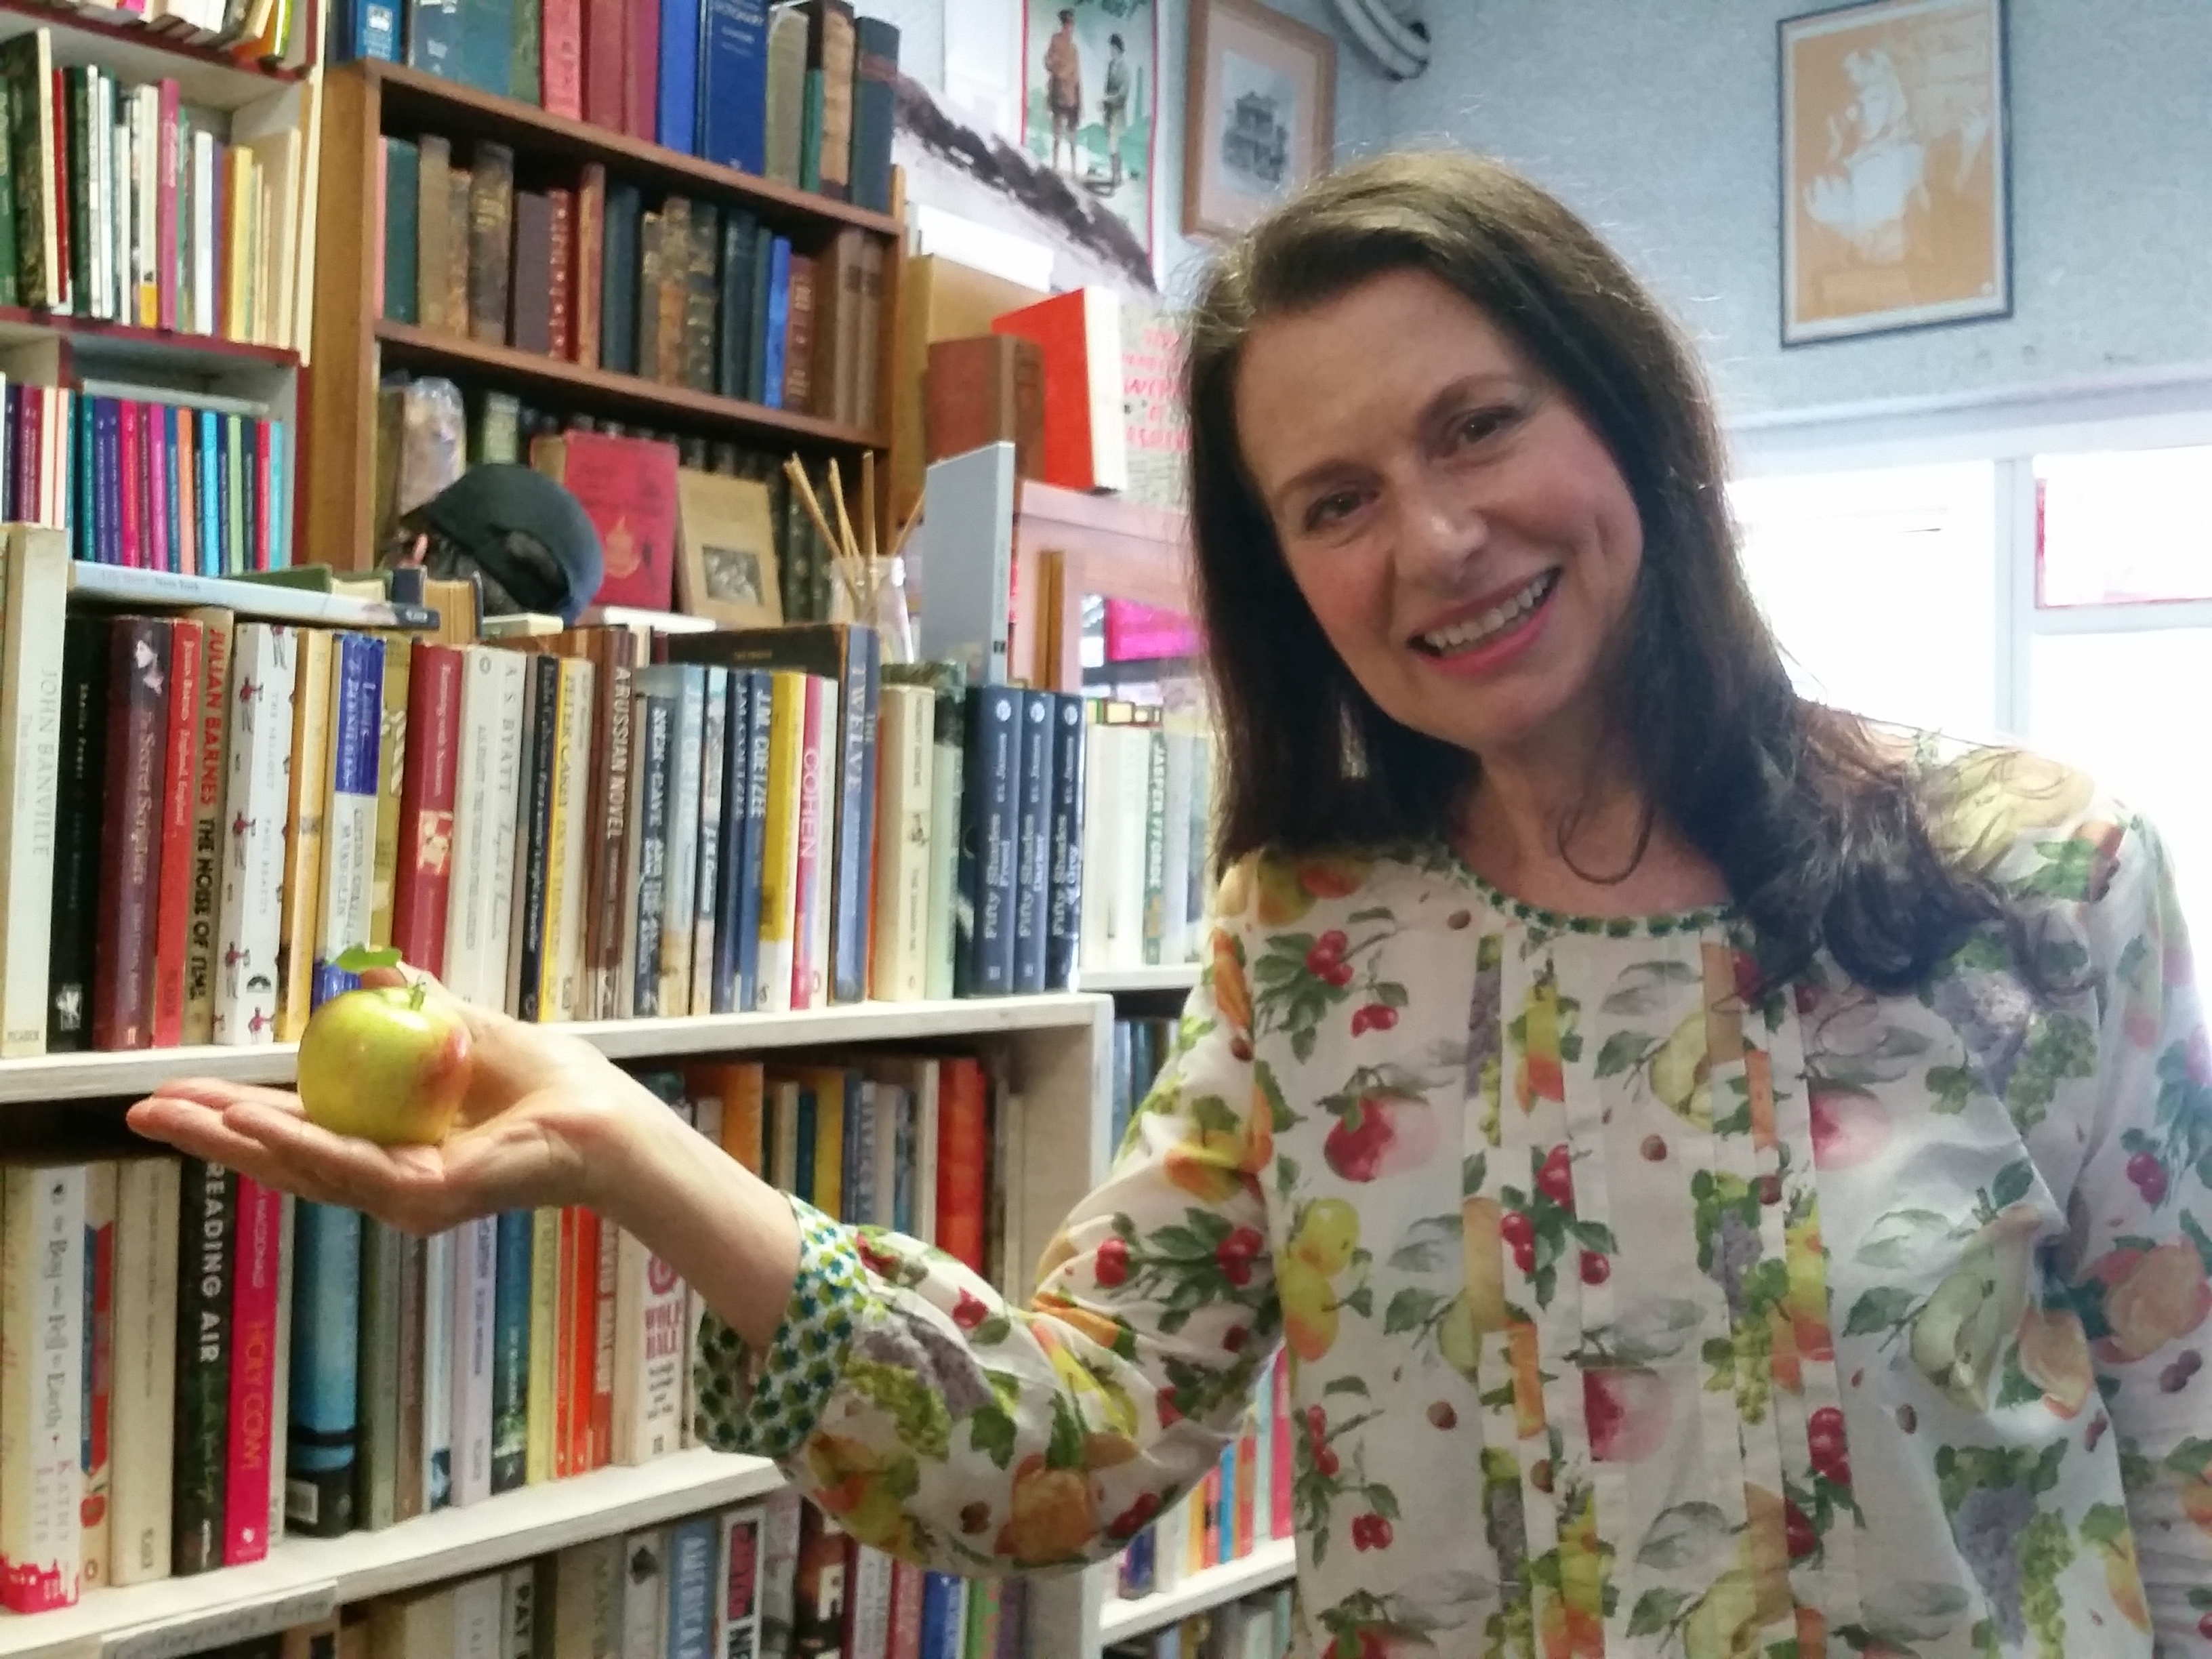 Suzie standing with a locally grown apple in Minerva's Bookstore